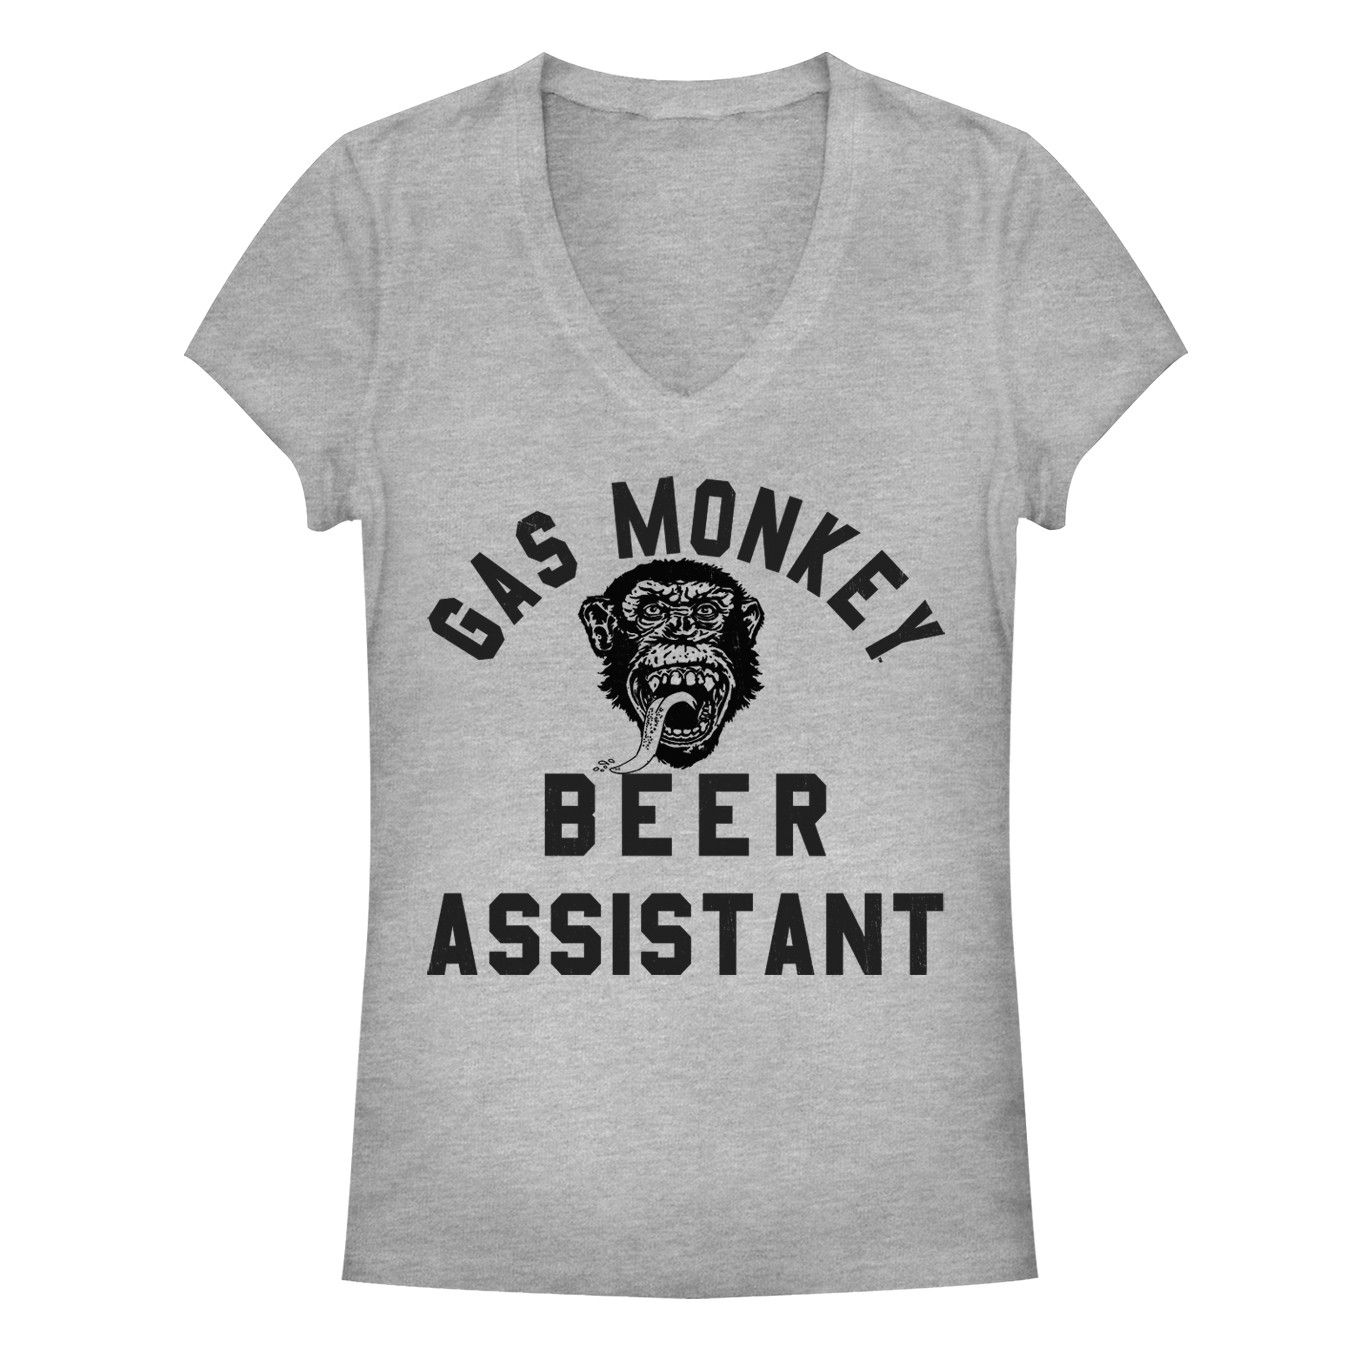 Gas monkey garage gas monkey pinterest garage monkey and gas - Women S Gas Monkey Garage T Shirt Beer Assistant